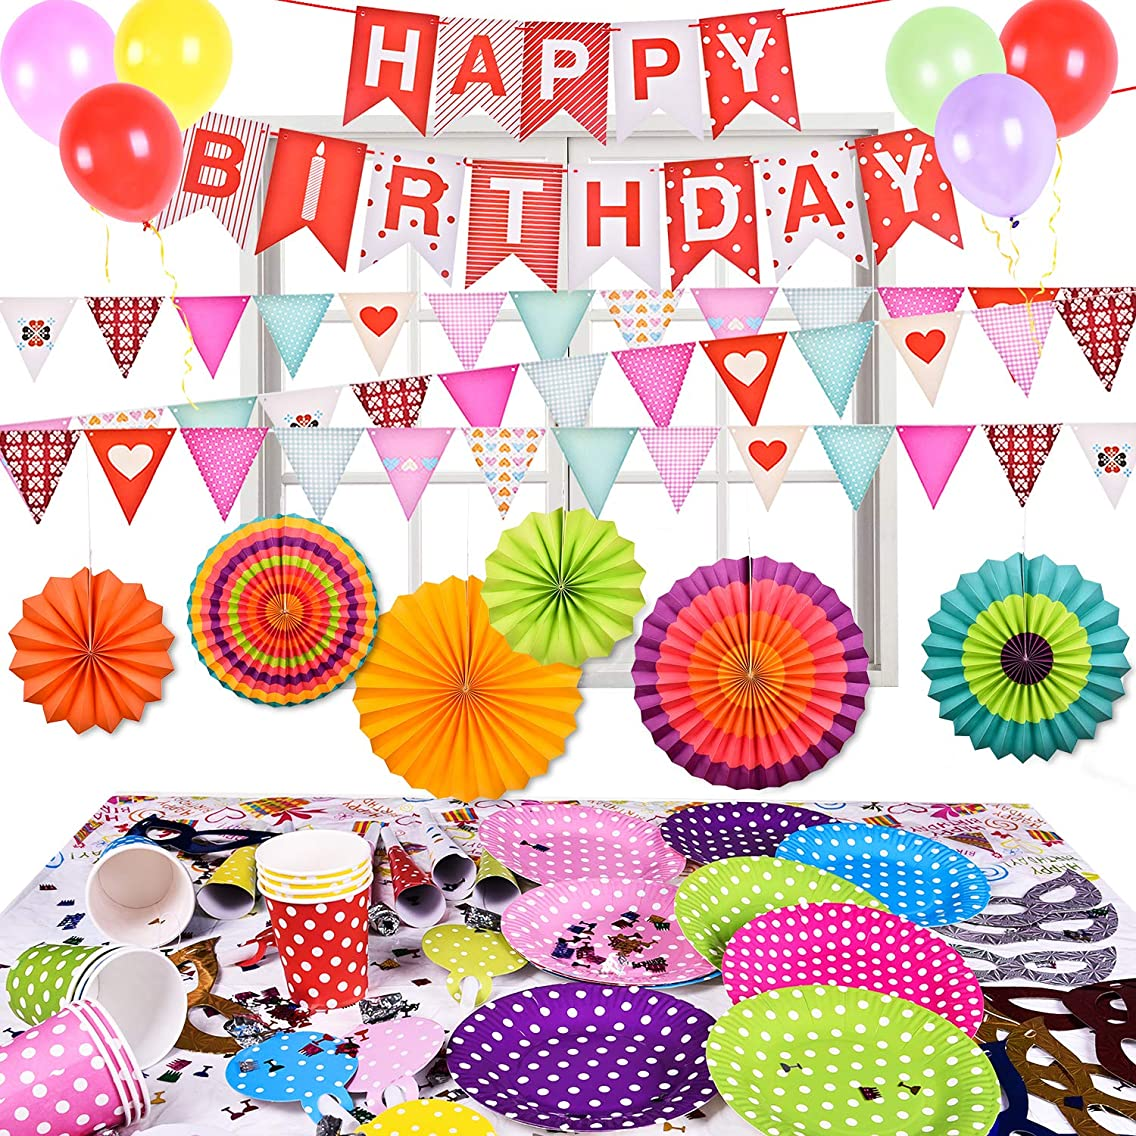 73Pcs Birthday Decorations Party Supplies Set All-in-One Pack Including Banner, Flags, Foil Party Balloons, Hats, Confetti, Tablecloth, Plates and More